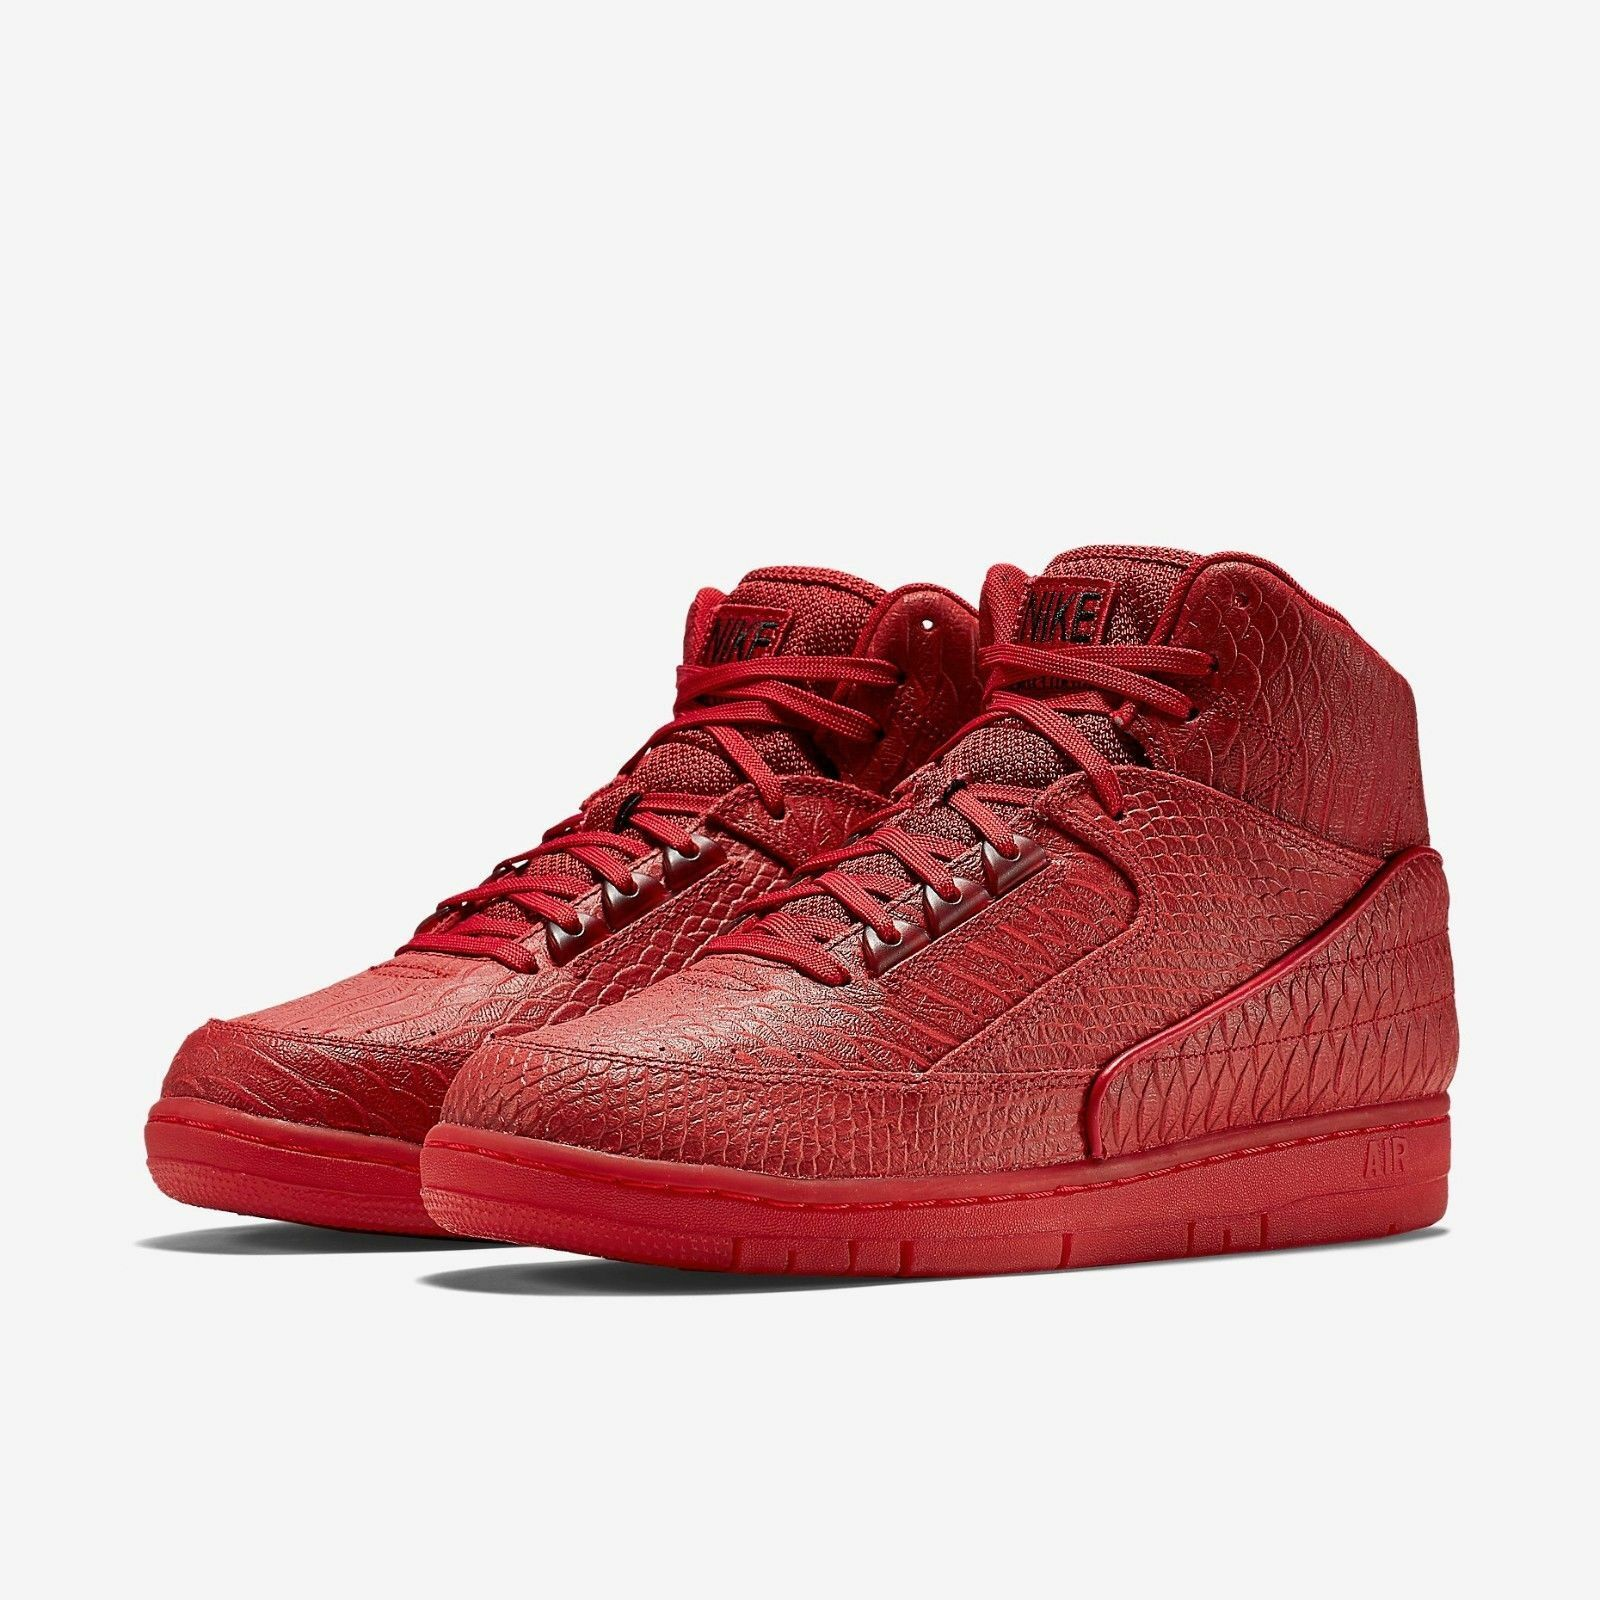 Nike Men's Air Python PRM Red October Size 11 NEW 705066 600 Gym Red